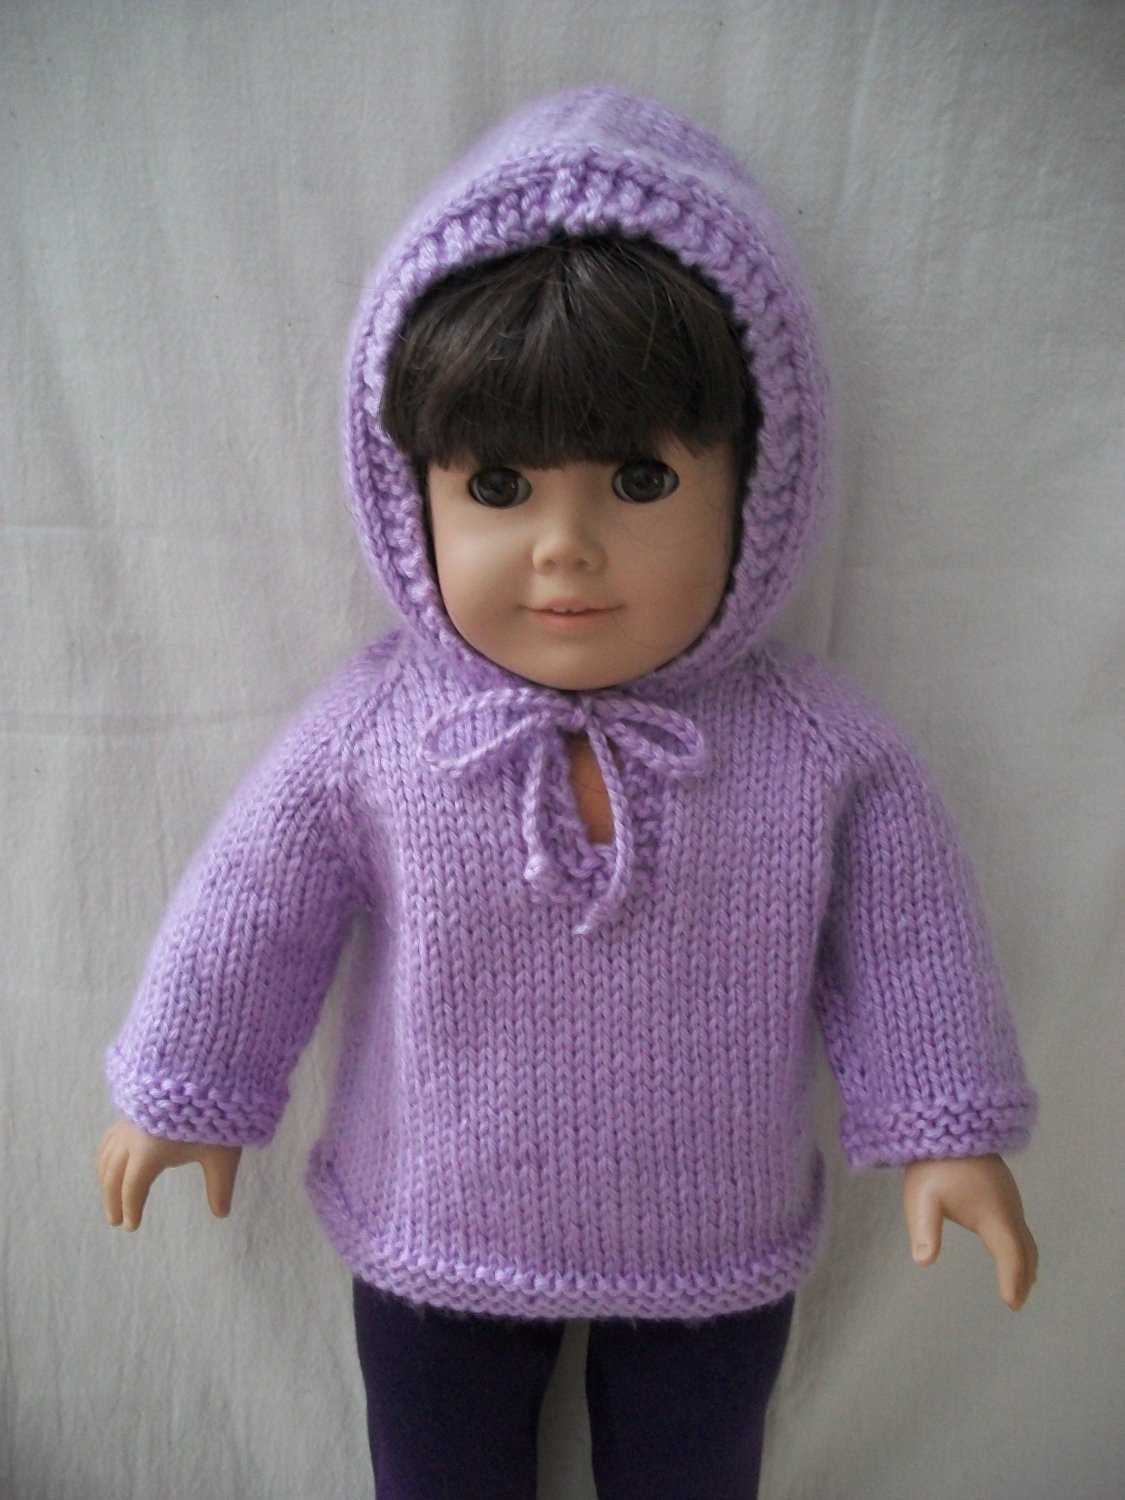 Inspirational Pdf Knitting Pattern for American Girl or 18 Doll top Free Knitting Patterns for American Girl Dolls Of Delightful 41 Models Free Knitting Patterns for American Girl Dolls